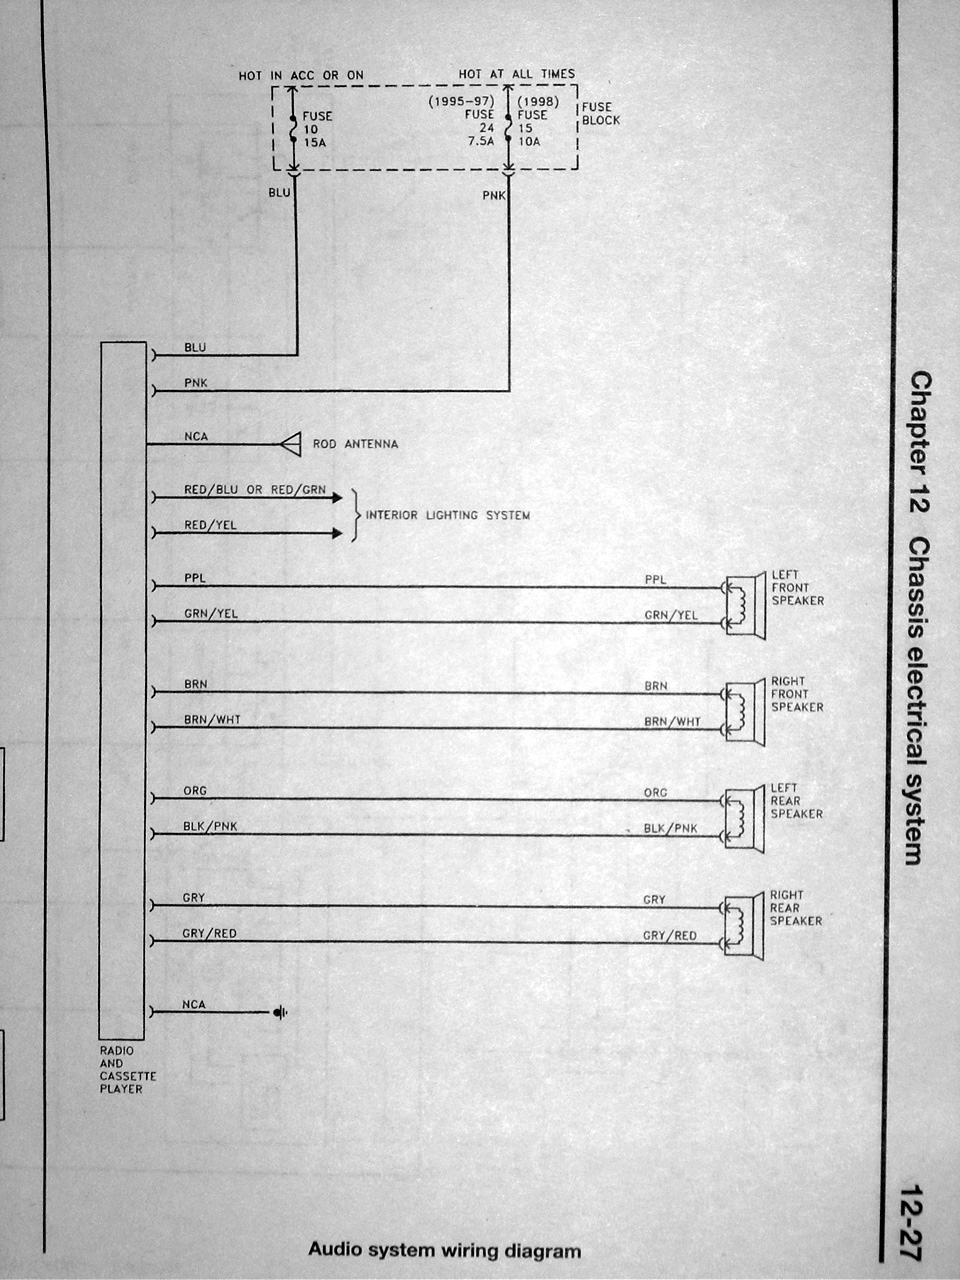 DSC01849 wiring diagram thread *useful info* nissan forum nissan tiida radio wiring diagram at creativeand.co